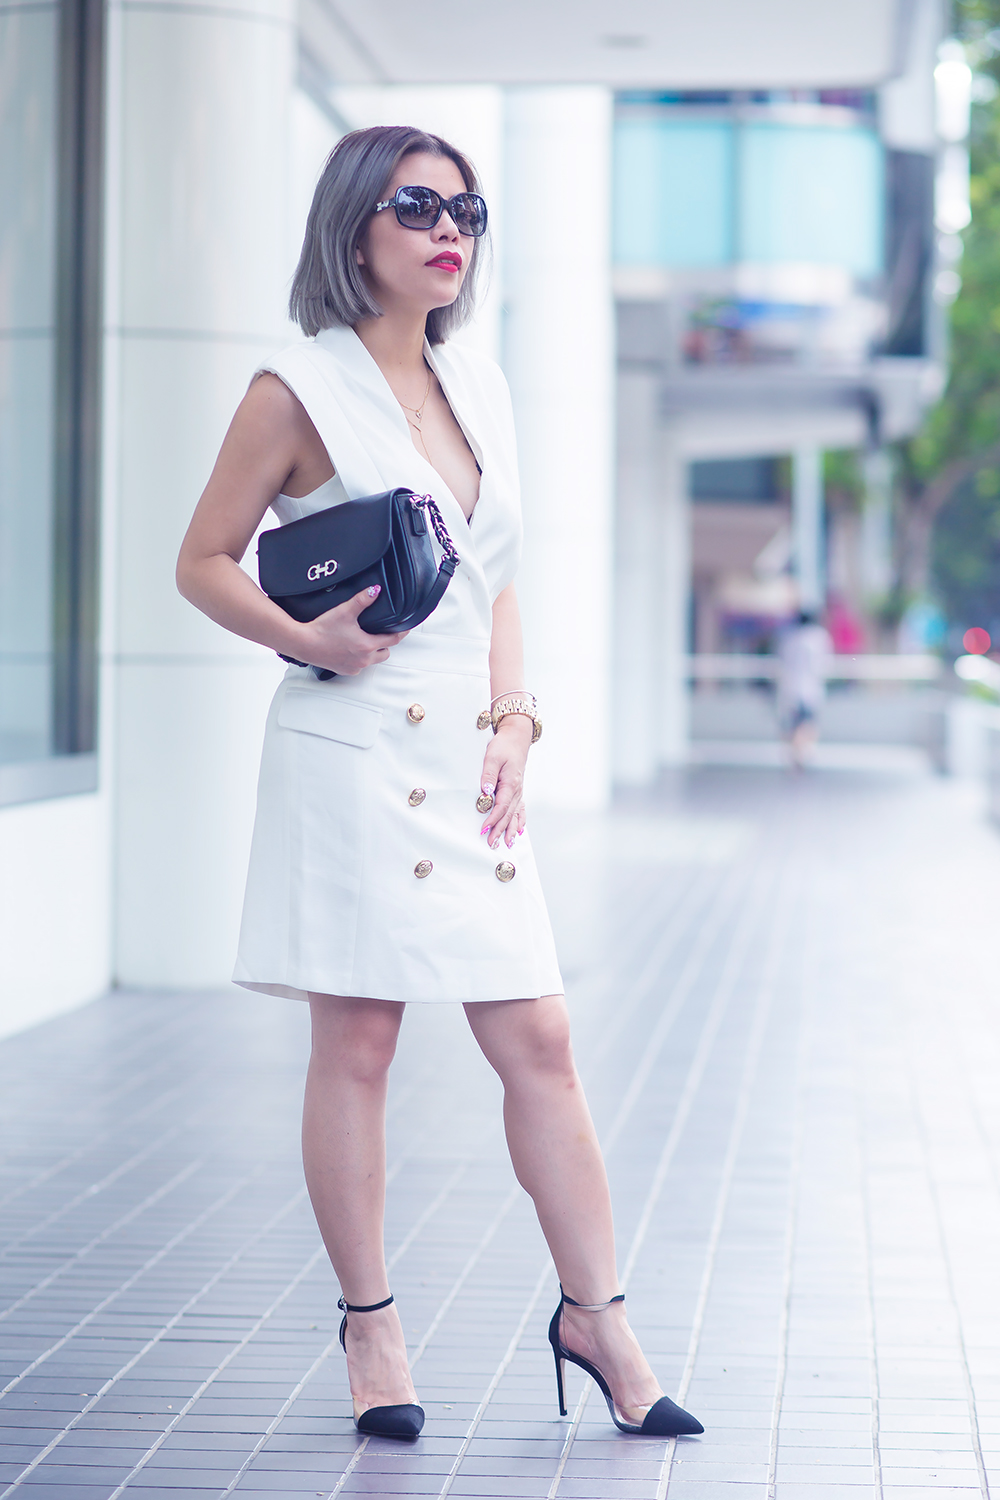 Crystal Phuong x Revolve Clothing- White blazer dress and black pumps